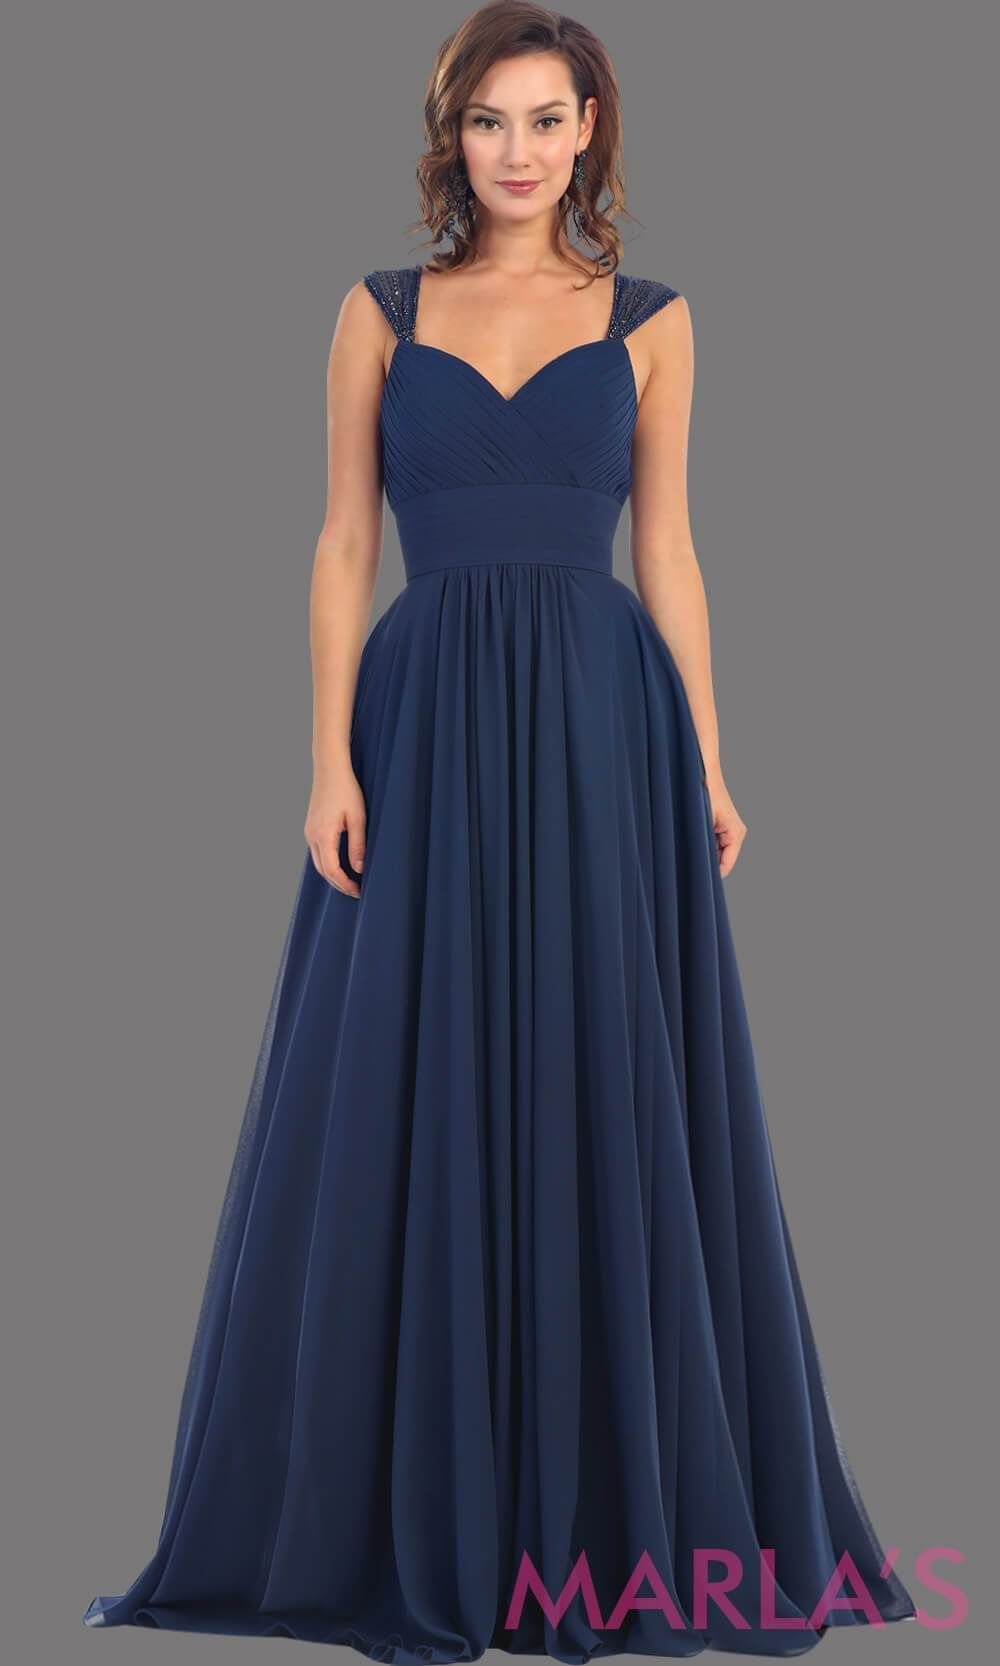 c2265986f715 Long Chiffon Dress with Sequin Wide Straps - Marla's Fashions - 3  #BRIDESMAIDDRESSES #PartyDresses